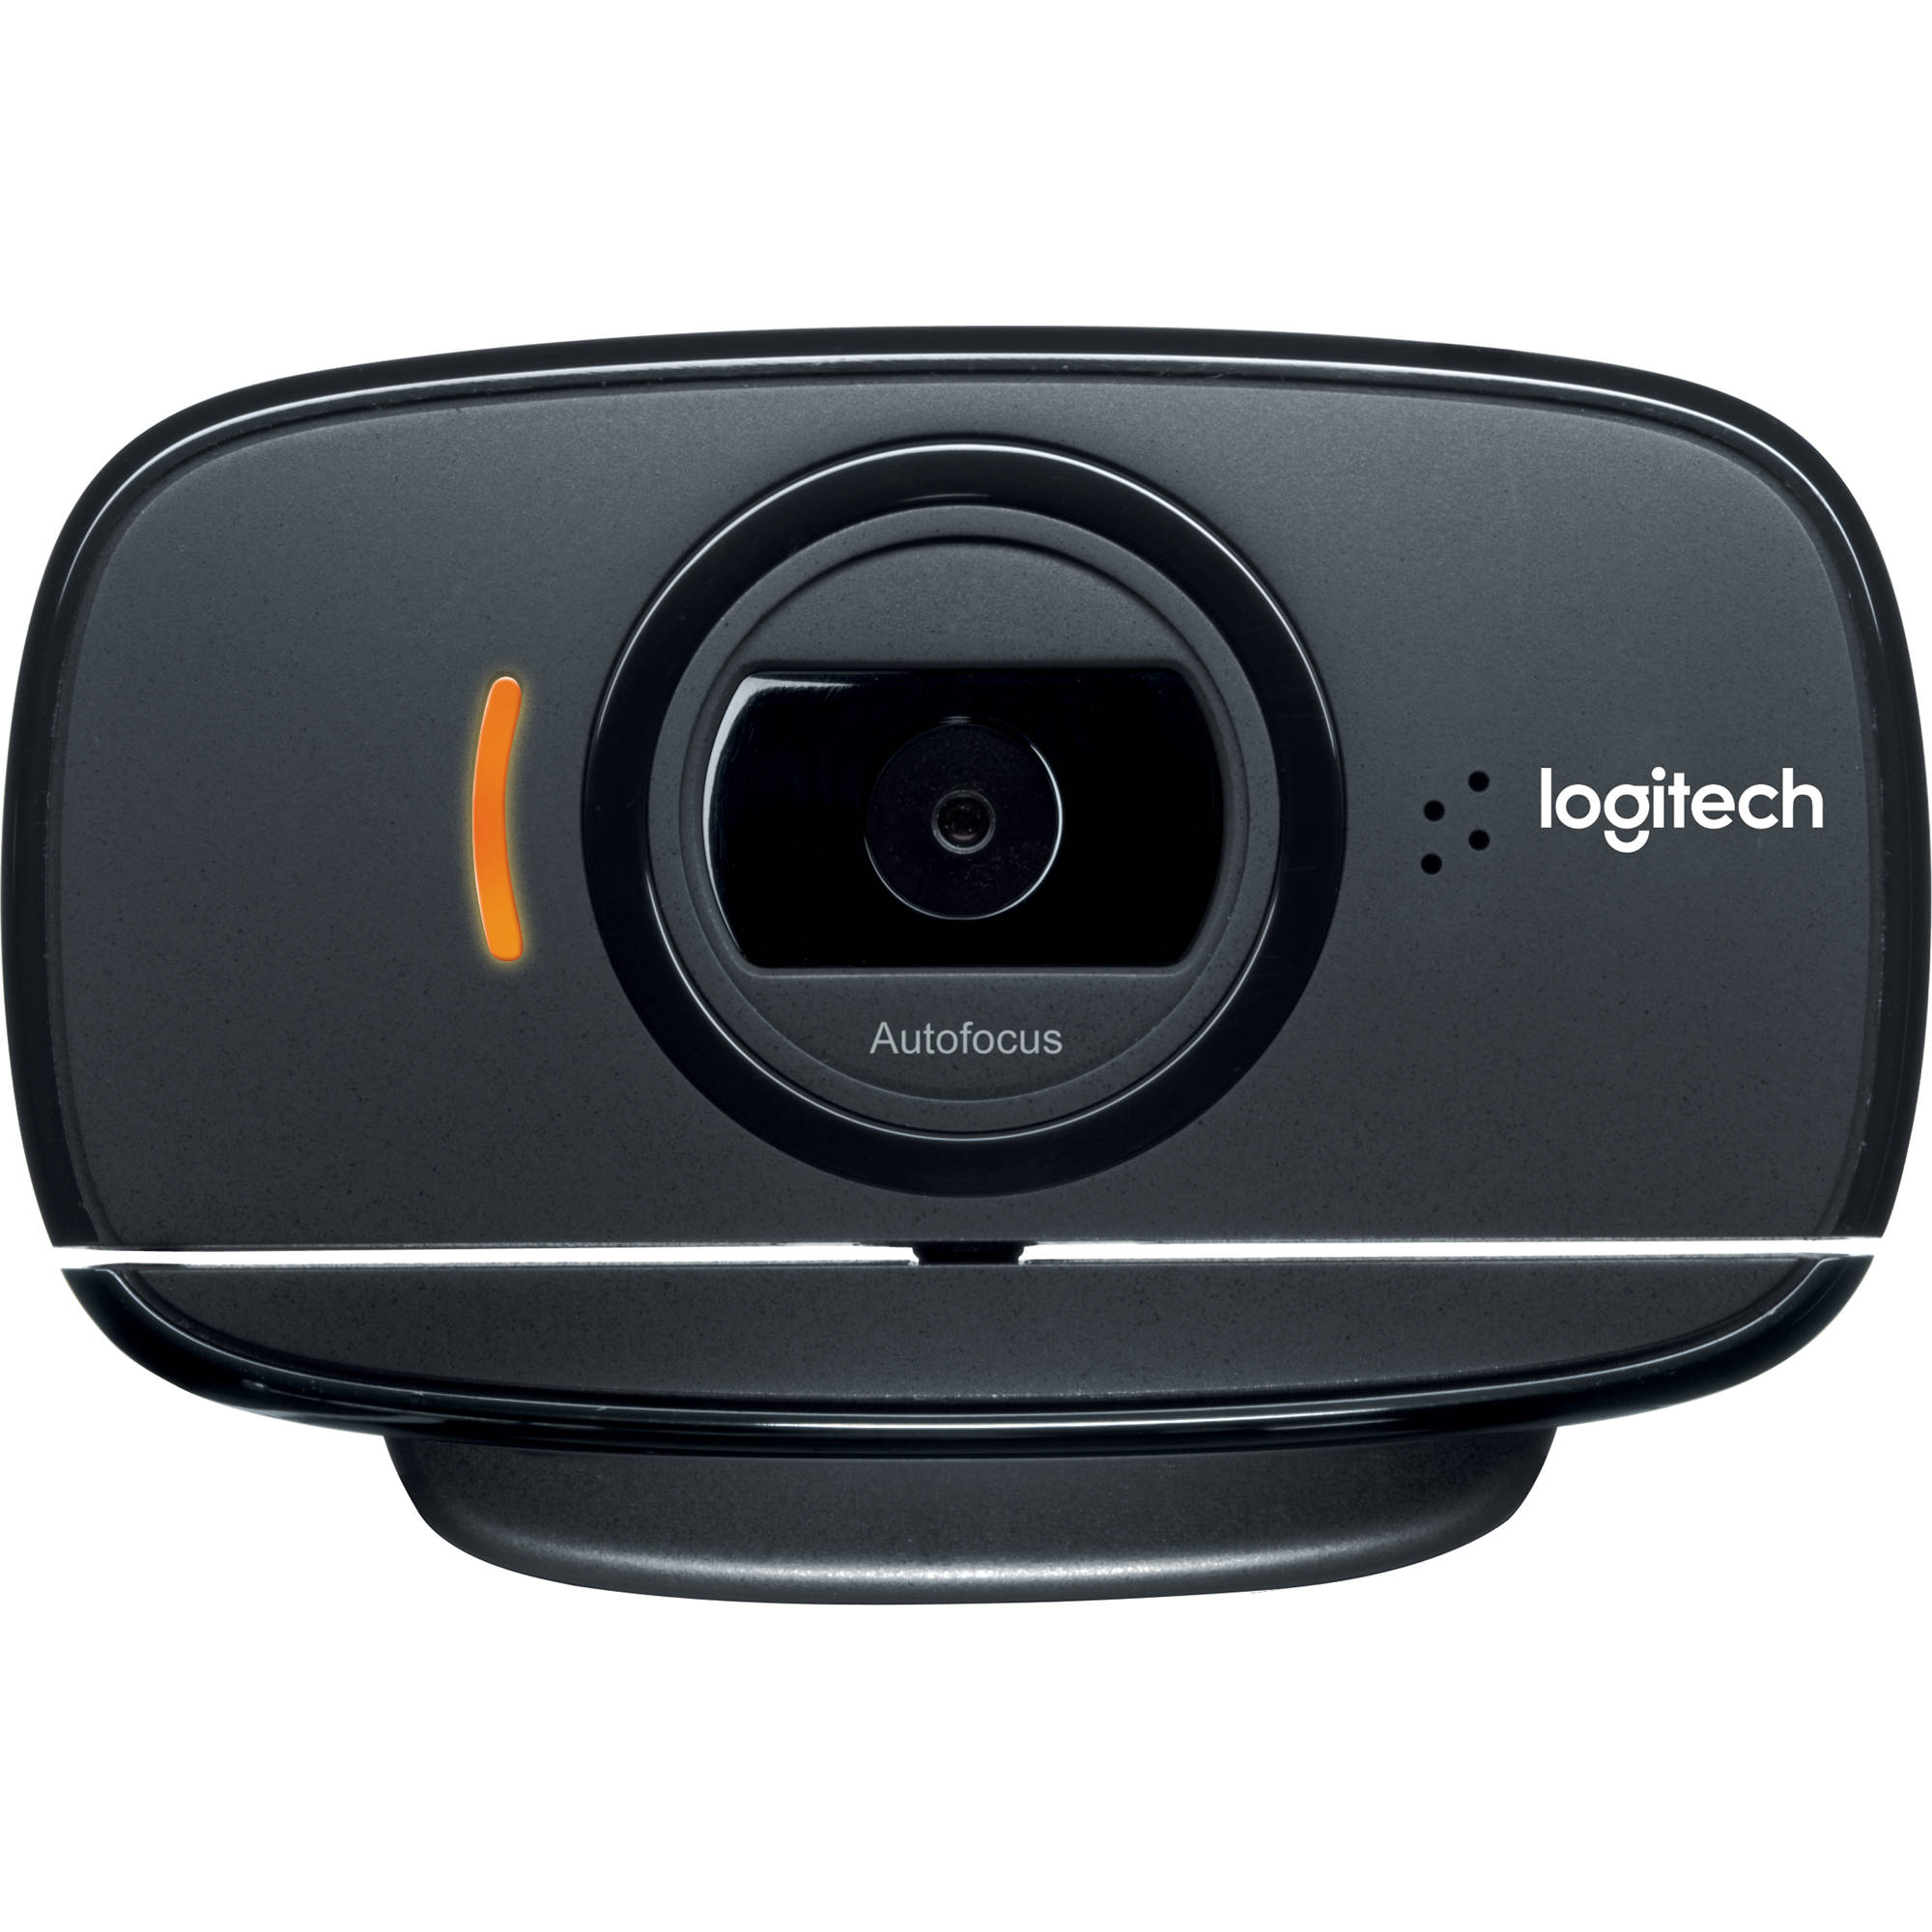 Image of Logitech B525 Business Webcam - Black